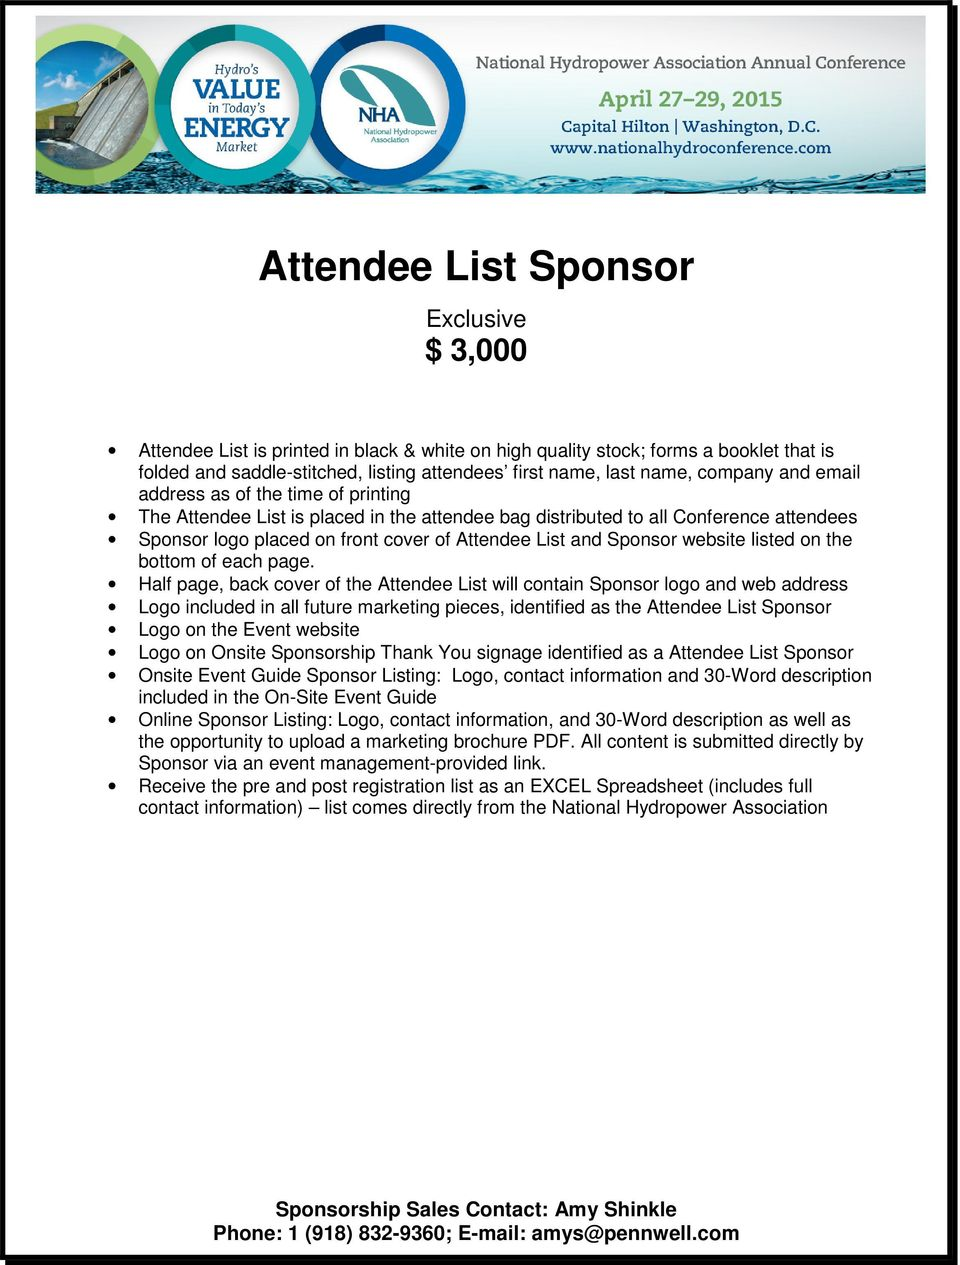 logo placed on front cover of Attendee List and Sponsor website listed on the bottom of each page.